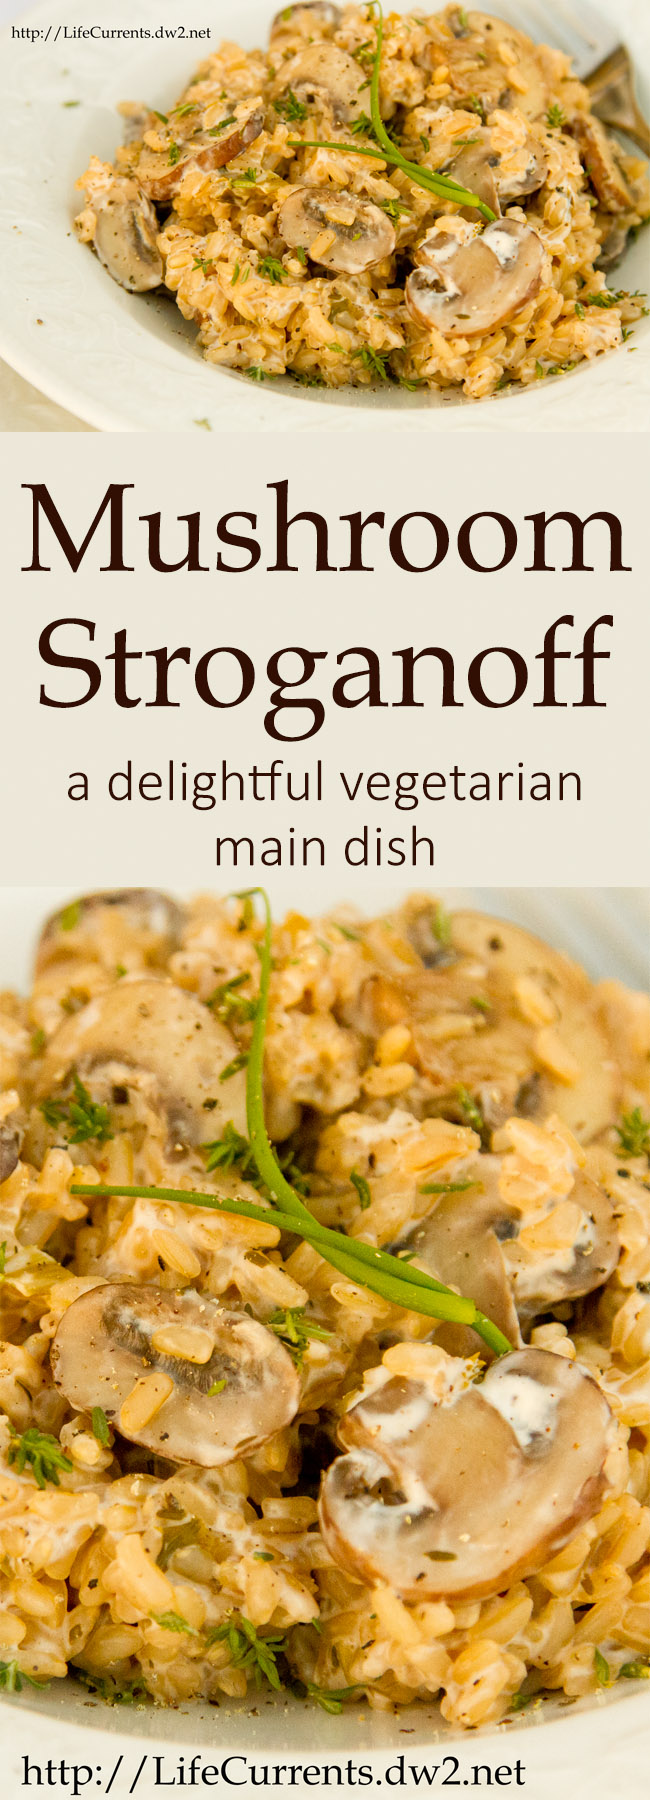 Mushroom Stroganoff long pin for Pinterest with two images and a title